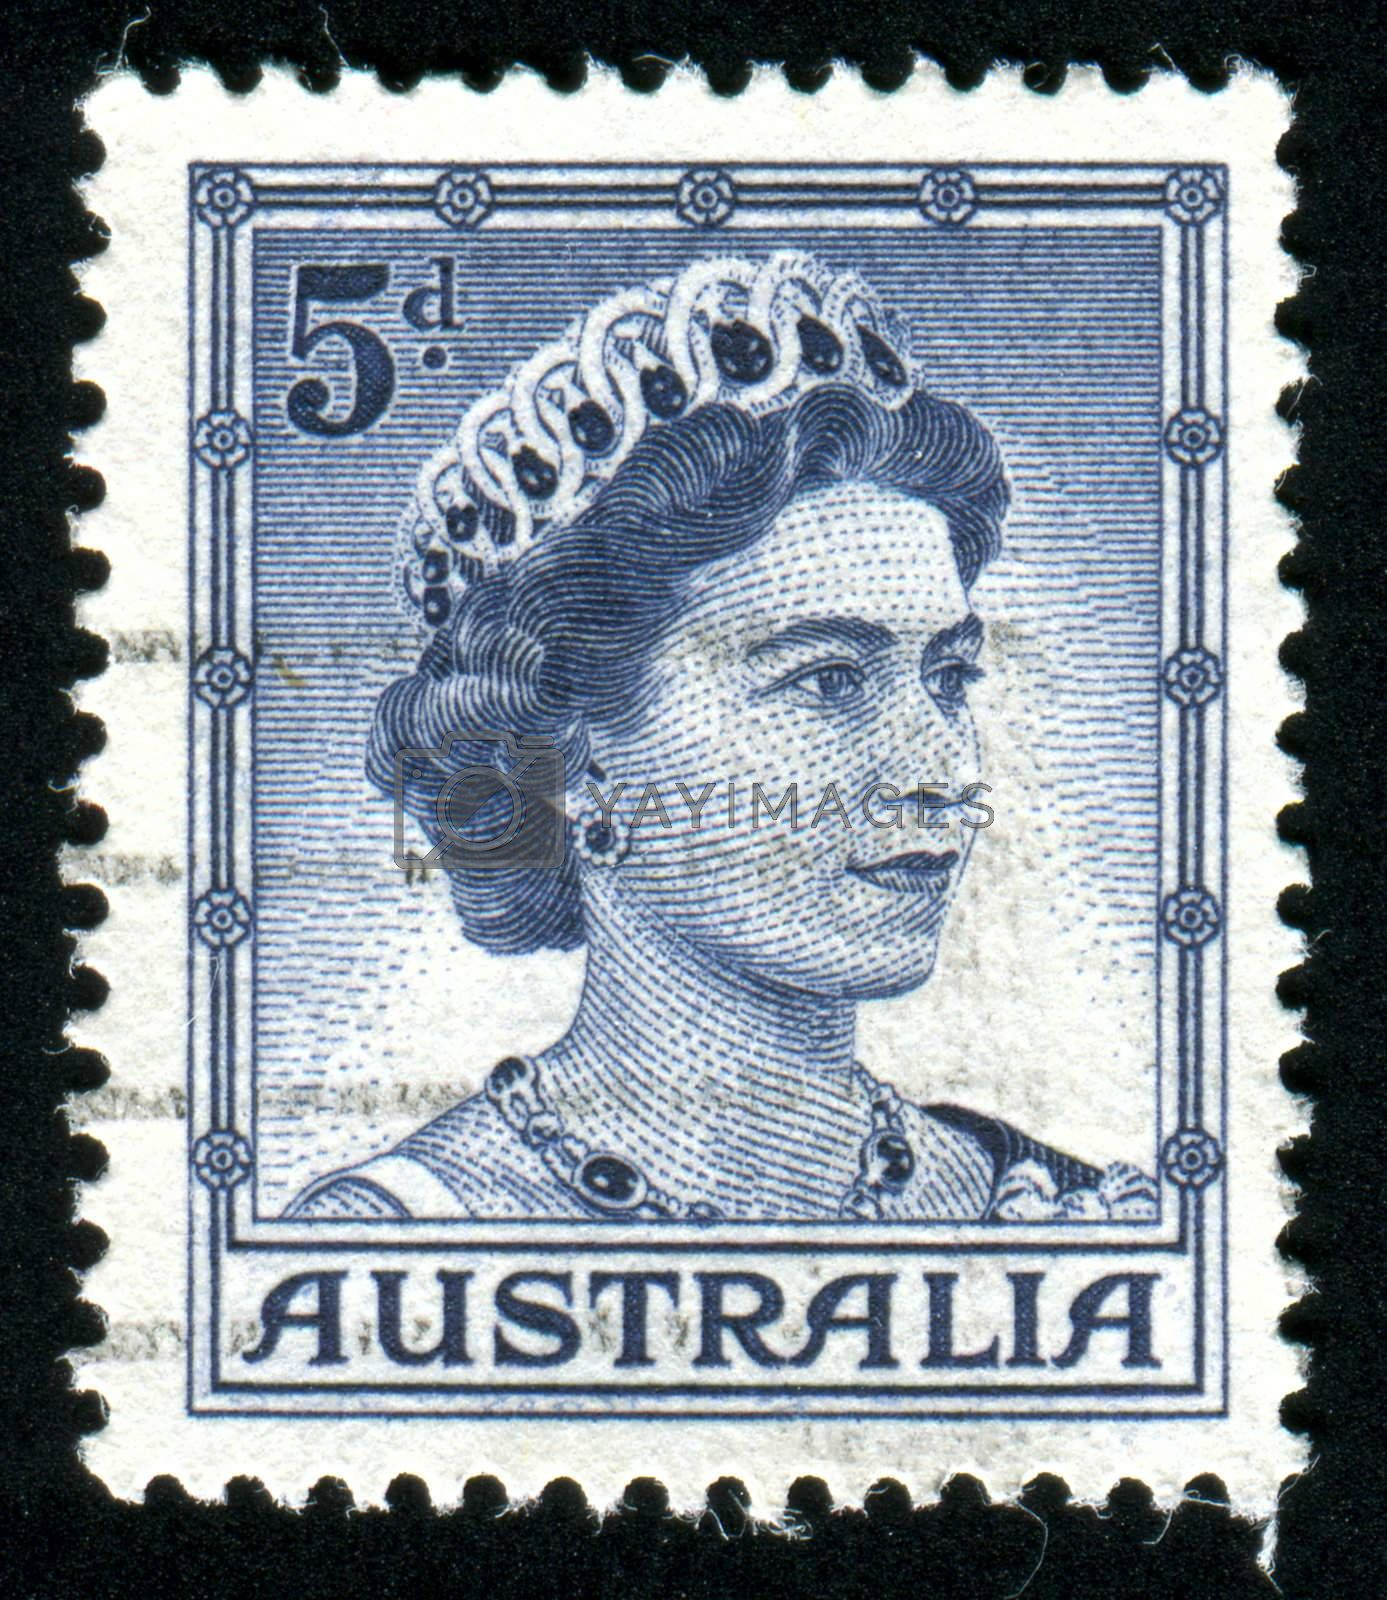 AUSTRALIA - CIRCA 1958: stamp printed by Australia, shows Queen Elizabeth II, circa 1958